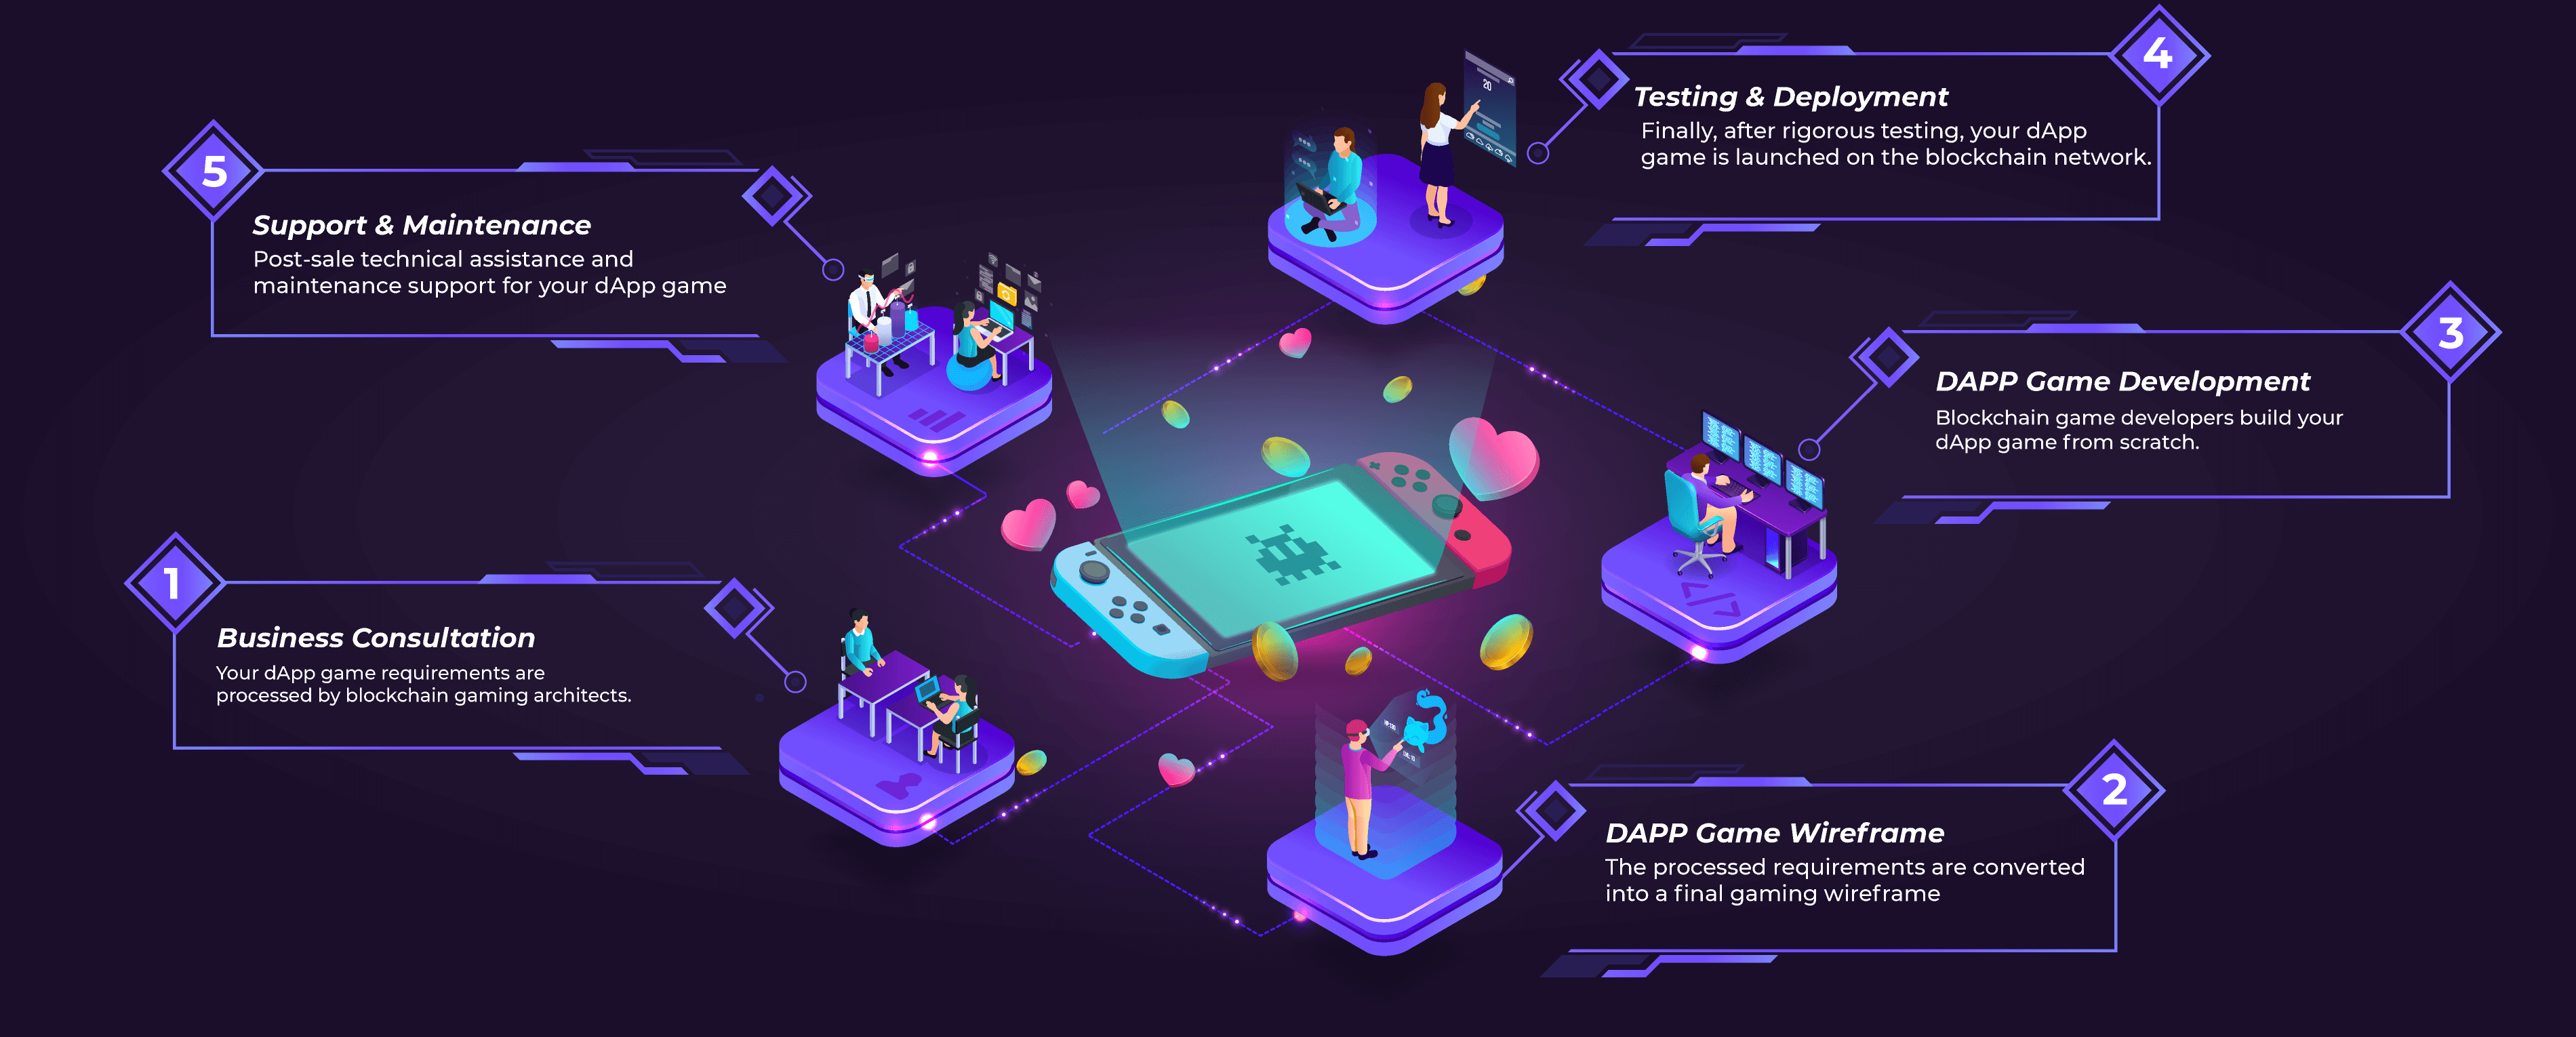 dApp Game Development Cycle